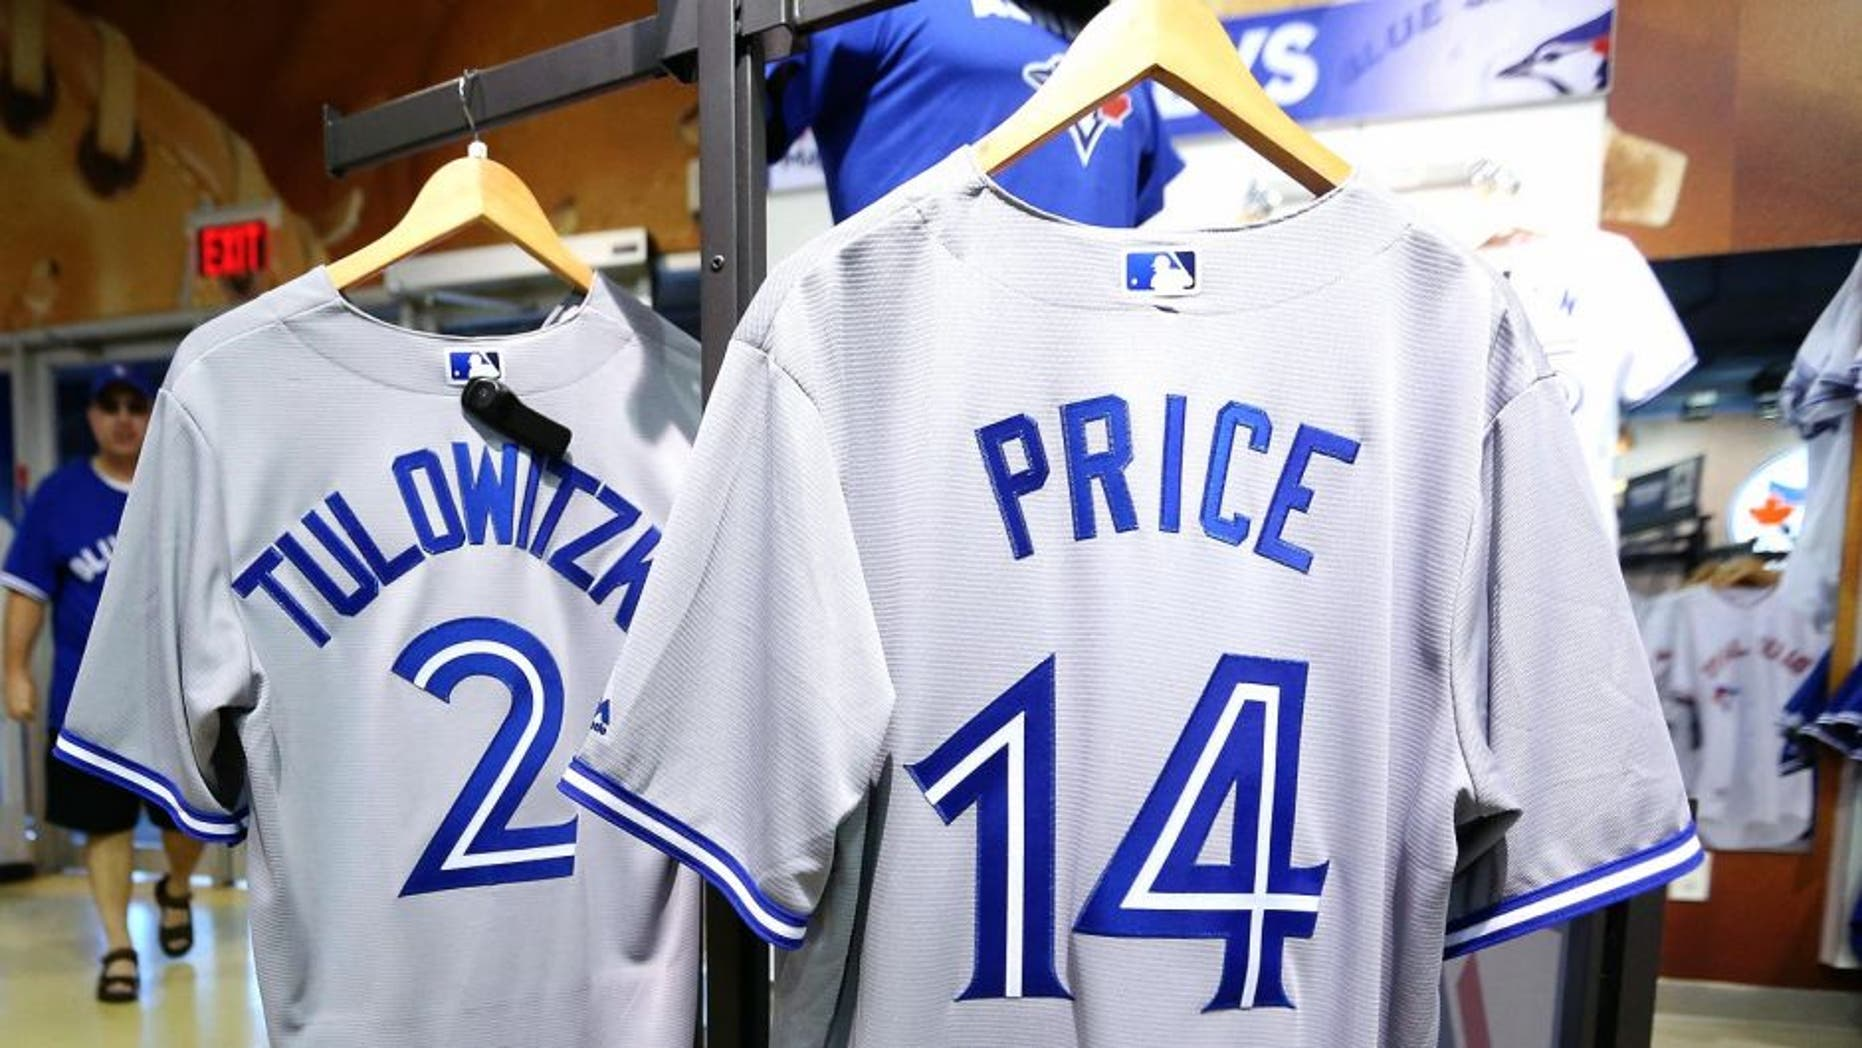 TORONTO, ON- JULY 30 - Not long after Toronto Blue Jays General Manager Alex Anthopoulos announces his trade with the Detroit Tigers for starting pitcher David Price workers in the Jays Shop started making number 14 David Price jerseys. The staff is still busy making Troy Tulowitzki number 2 jerseys in Toronto. July 30, 2015. (Steve Russell/Toronto Star via Getty Images)